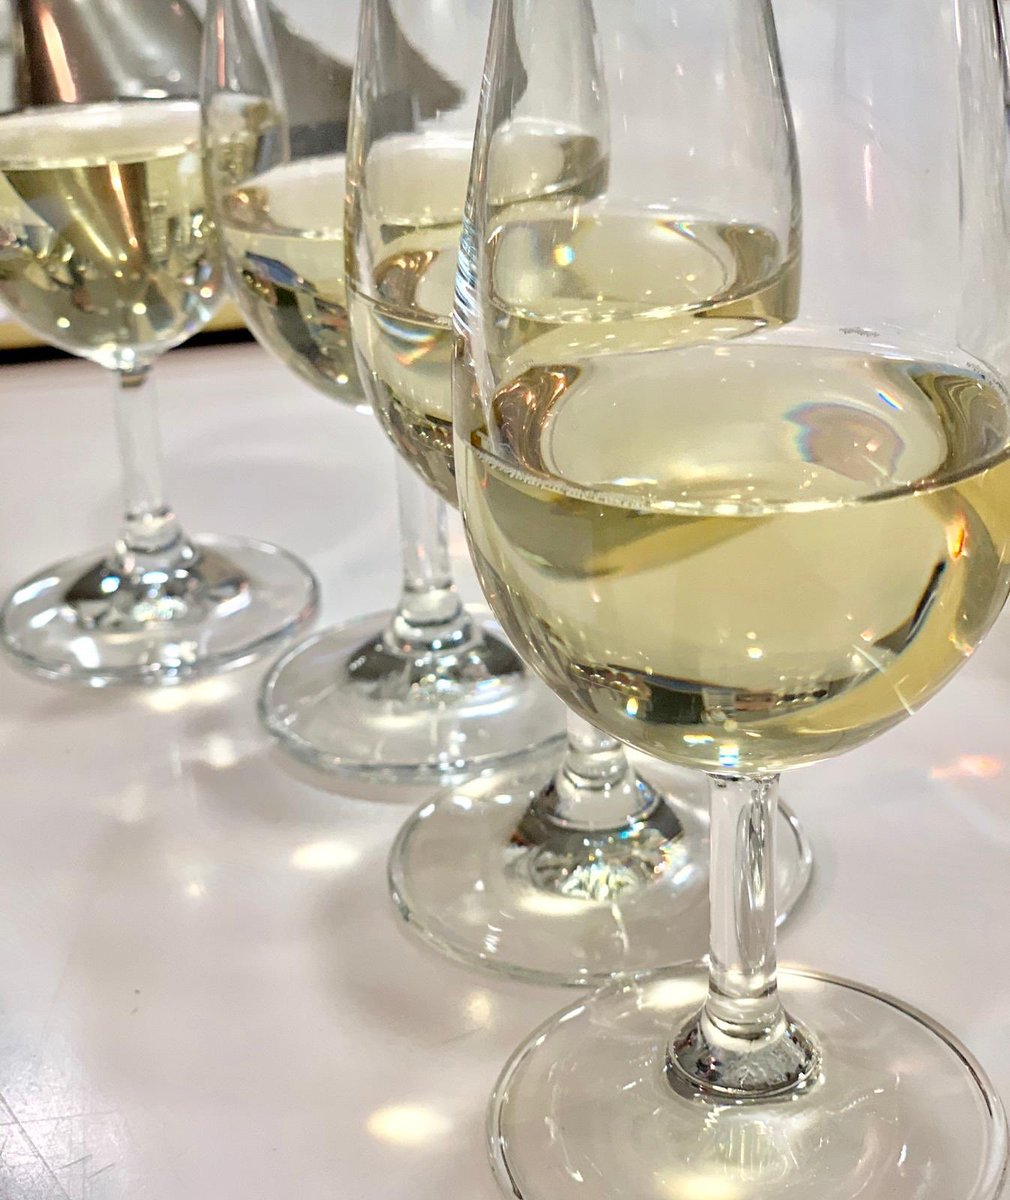 """""""It's all 'bout that base, 'bout that base, no treble"""" #blending #basewines #BlancdeBlancs #Ruinart #MeghanTrainor"""